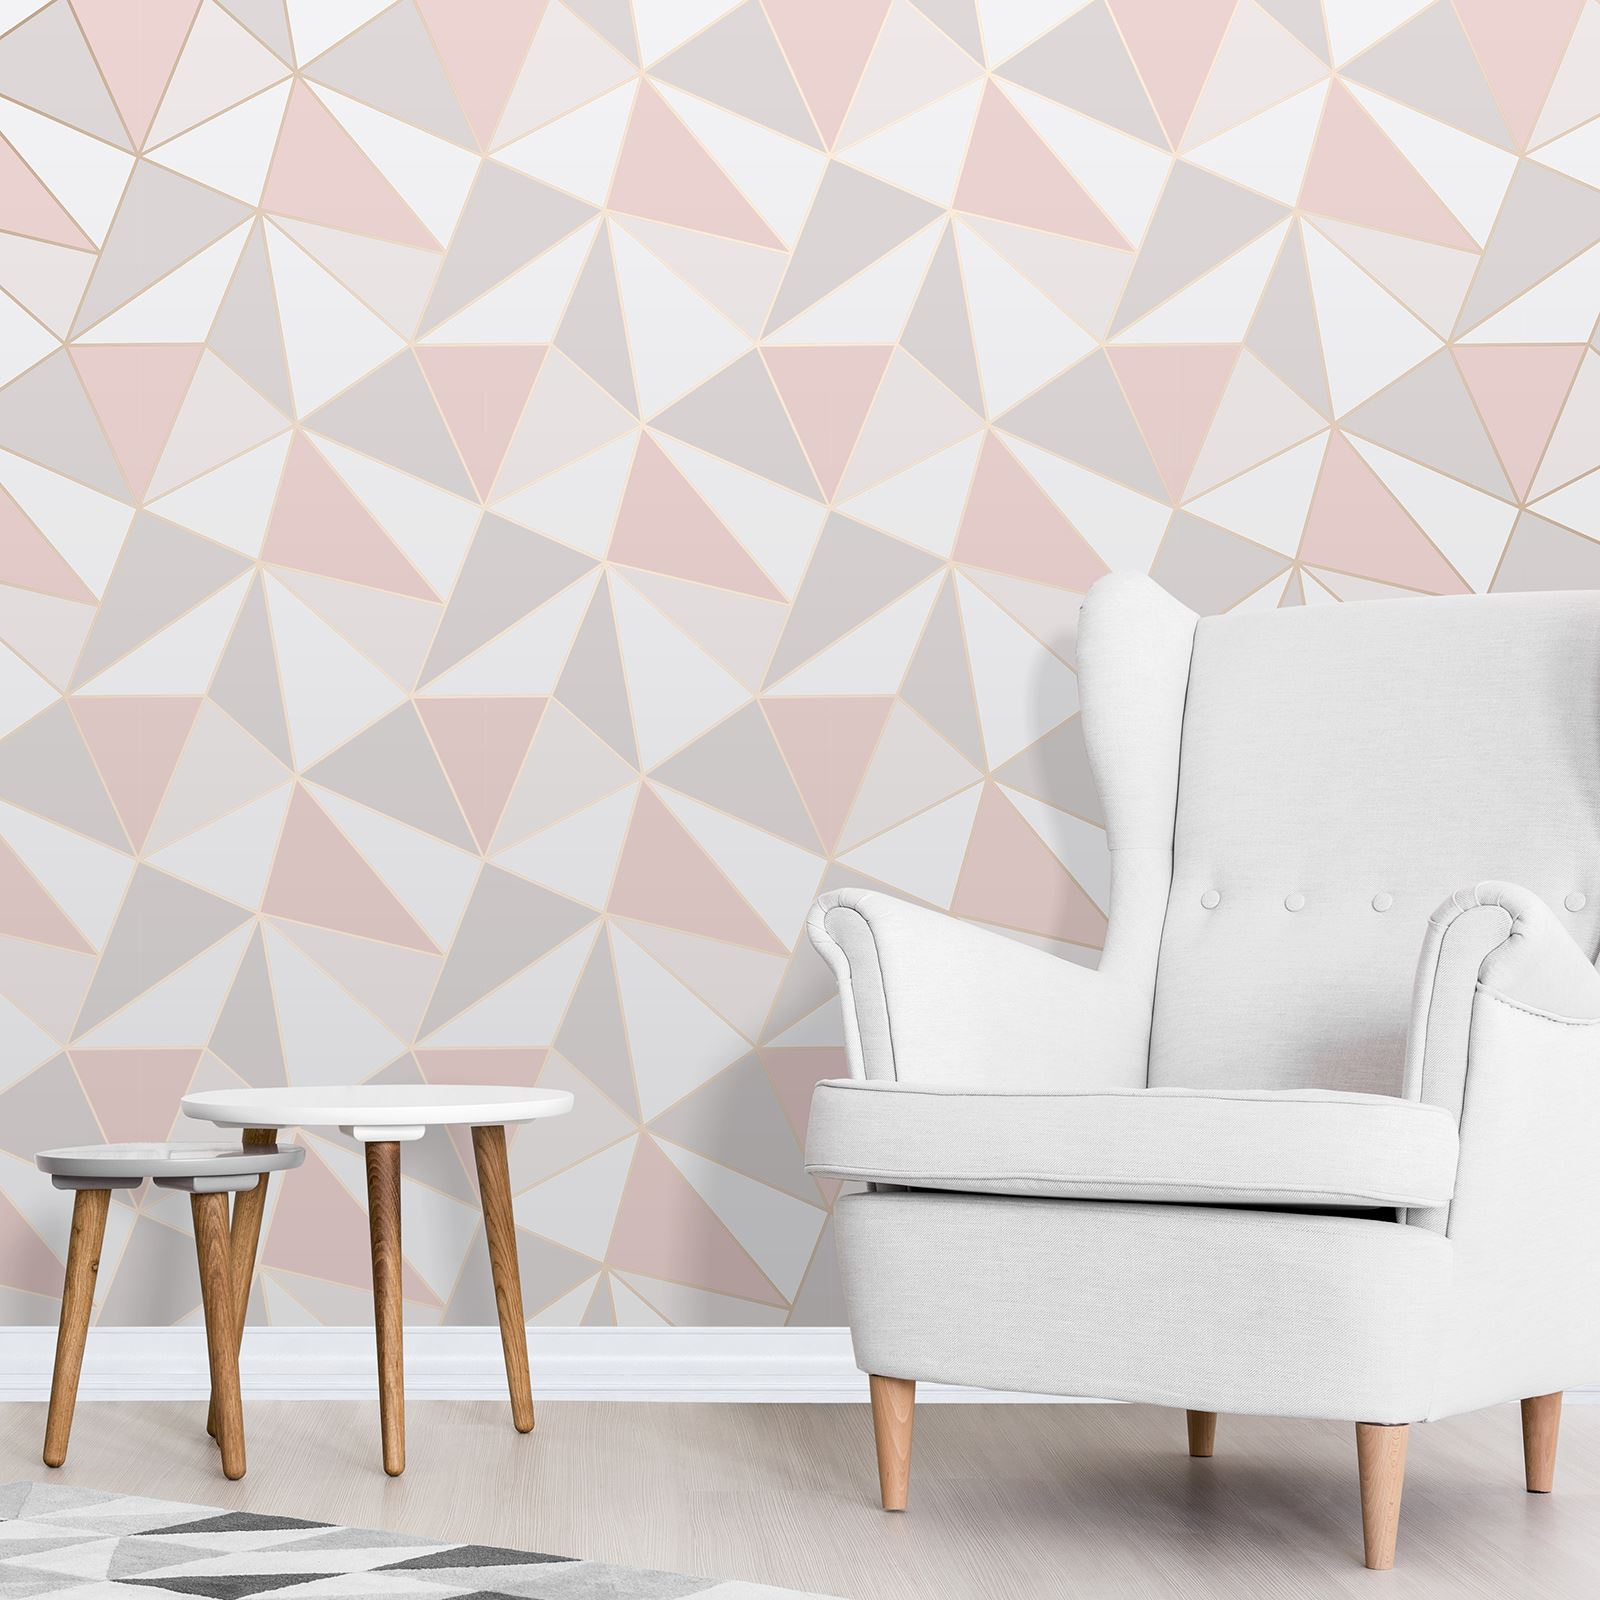 16 Rose Gold And Copper Details For Stylish Interior Decor: APEX GEOMETRIC WALLPAPER ROSE GOLD / PINK